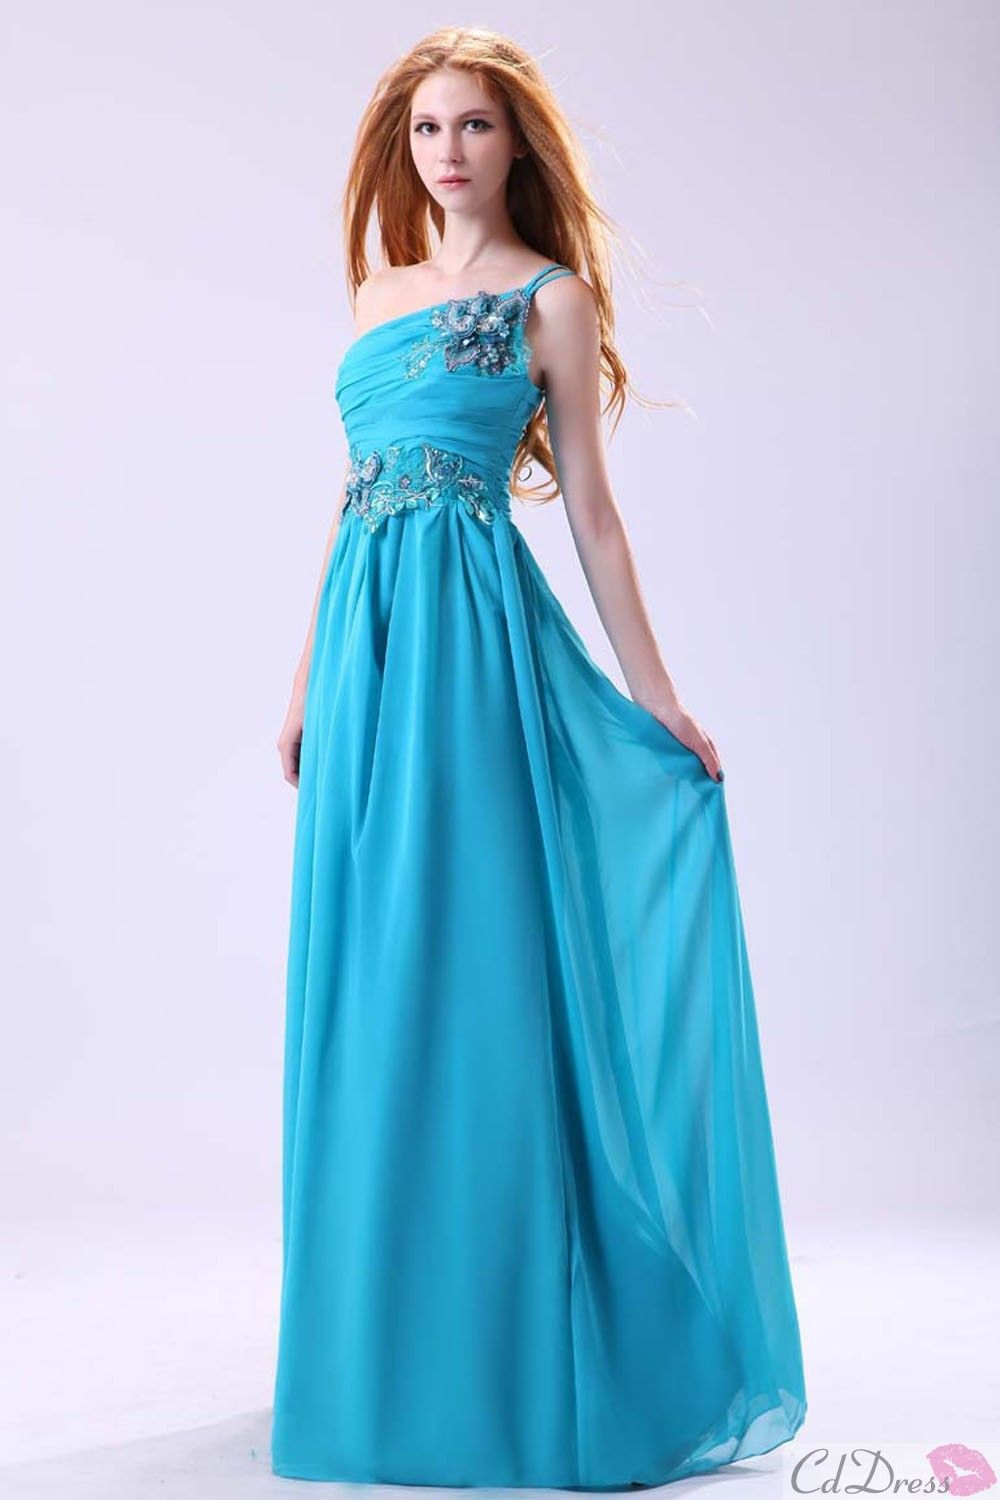 Best Plus Size 80s Prom Dresses Gallery - Wedding Ideas - memiocall.com